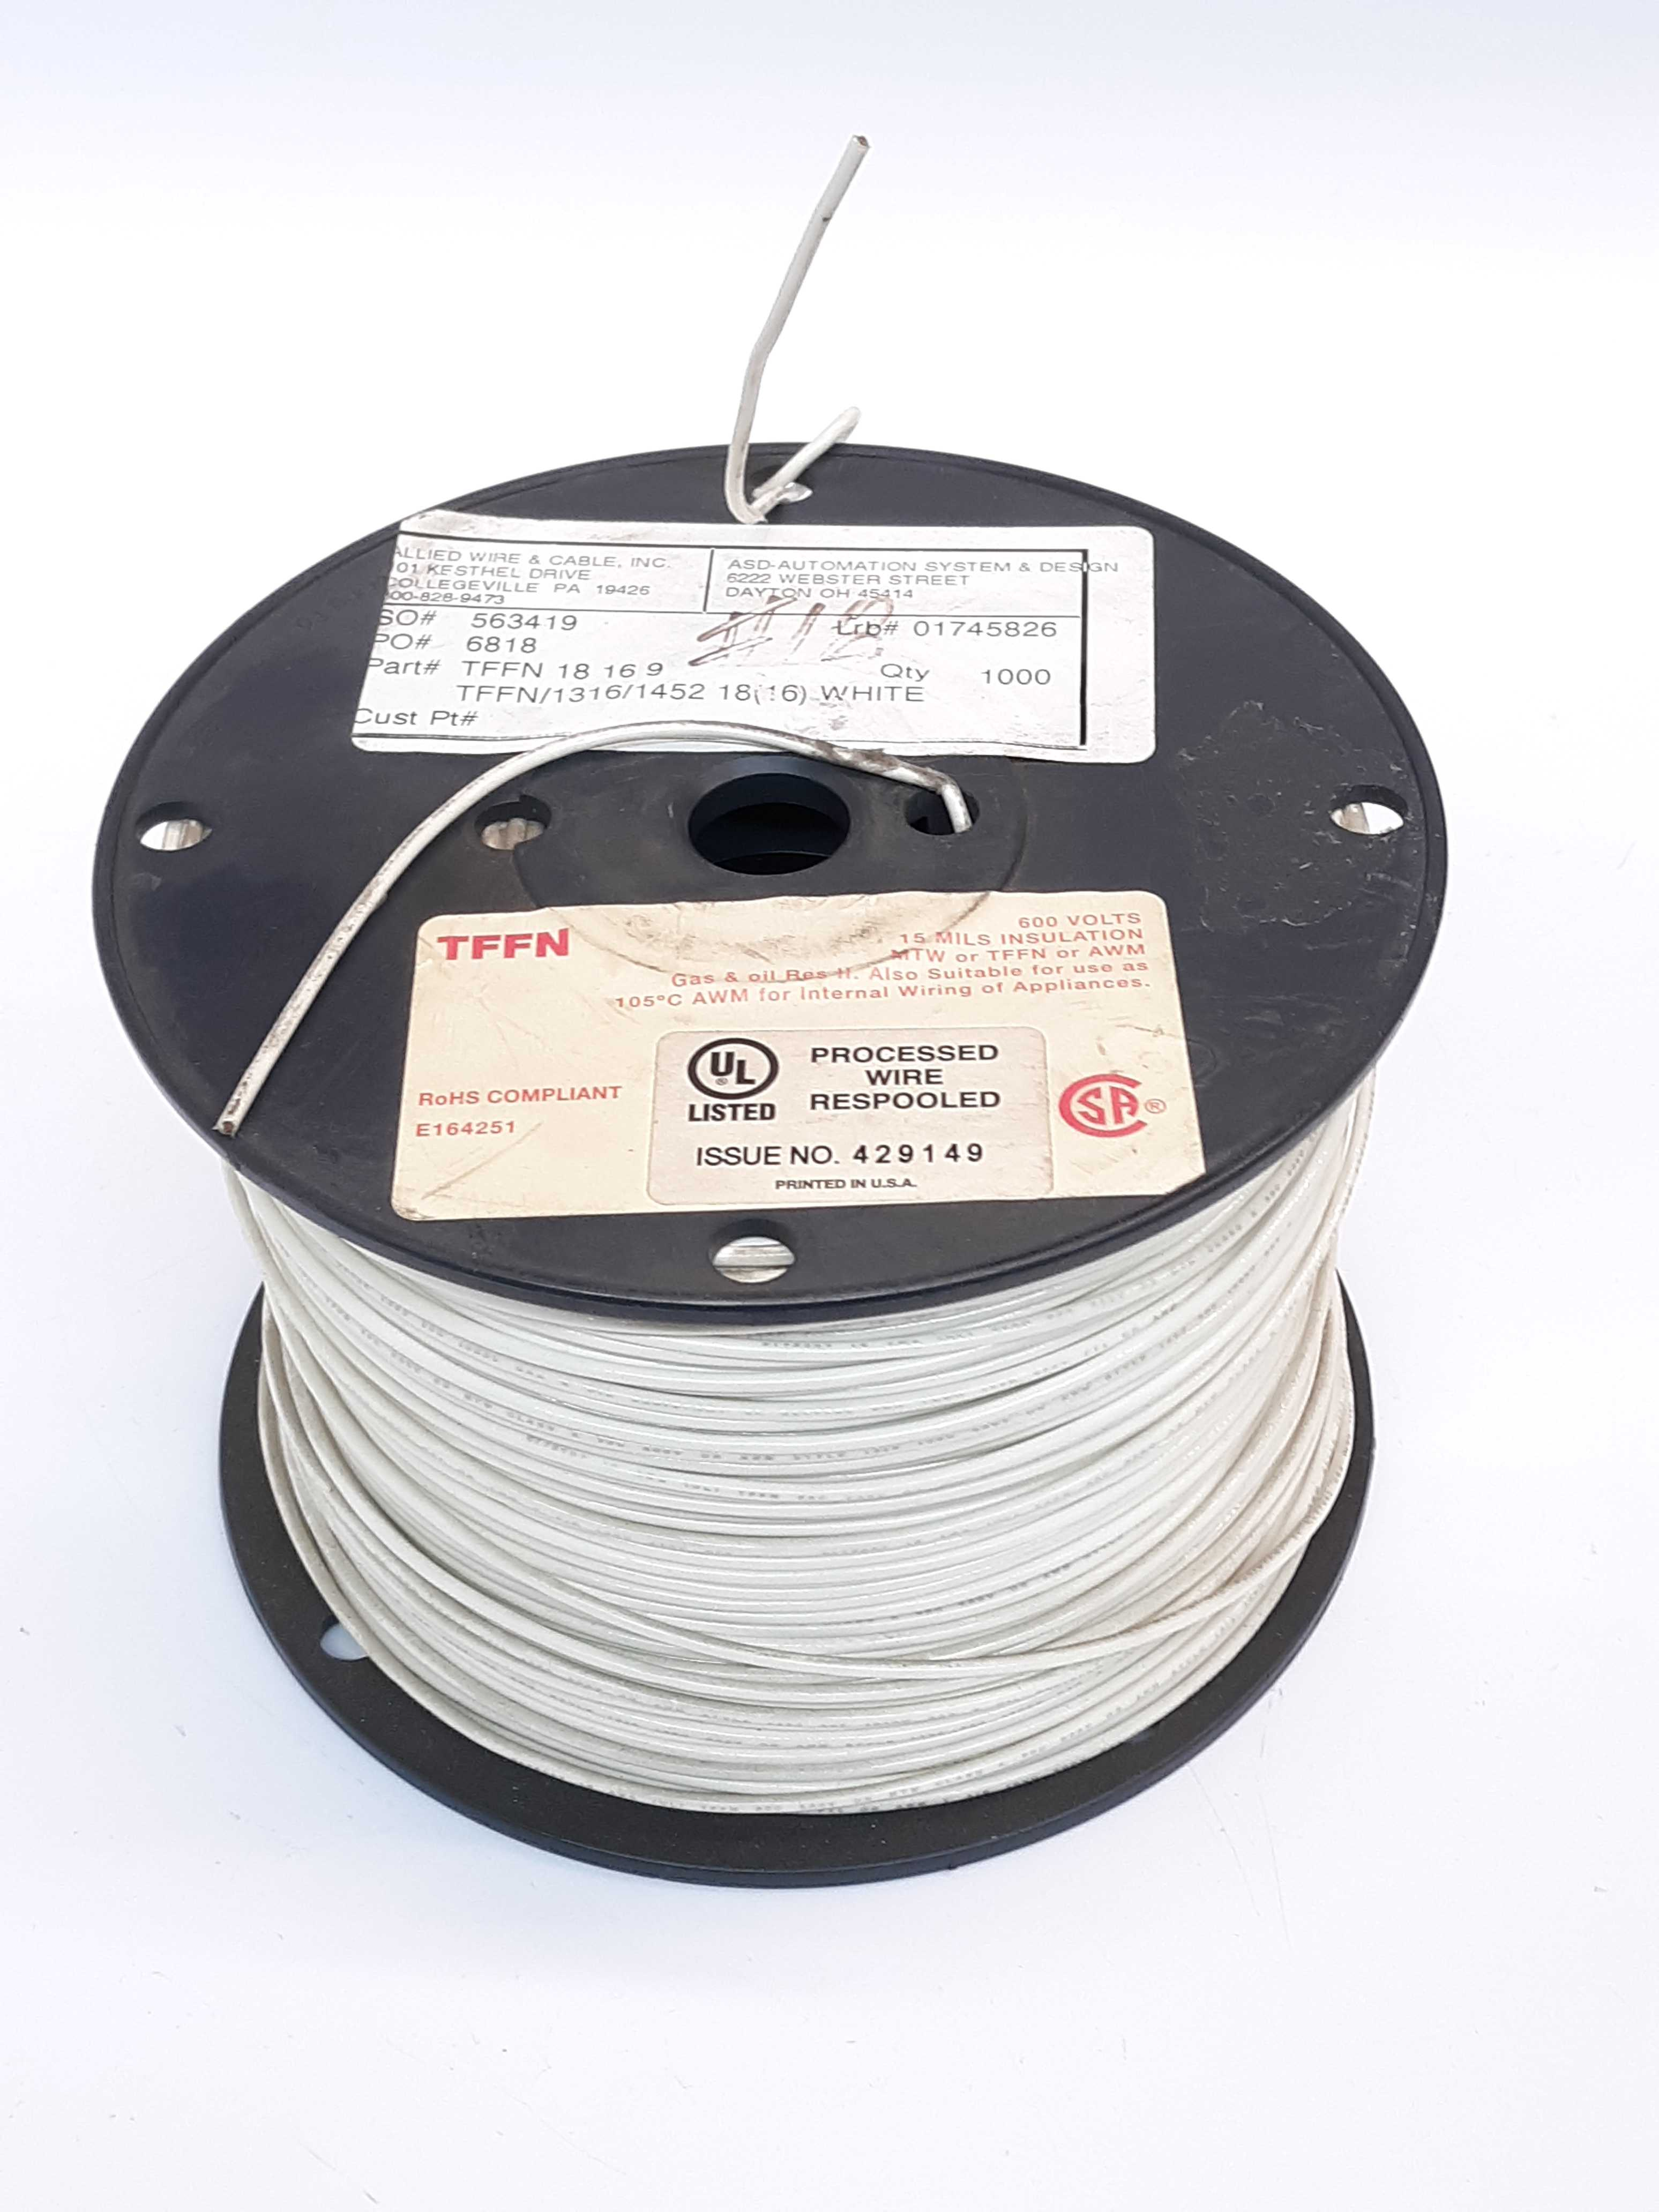 Allied Wire & Cable Inc TFFN 18 16 9 Copper Hookup Wire